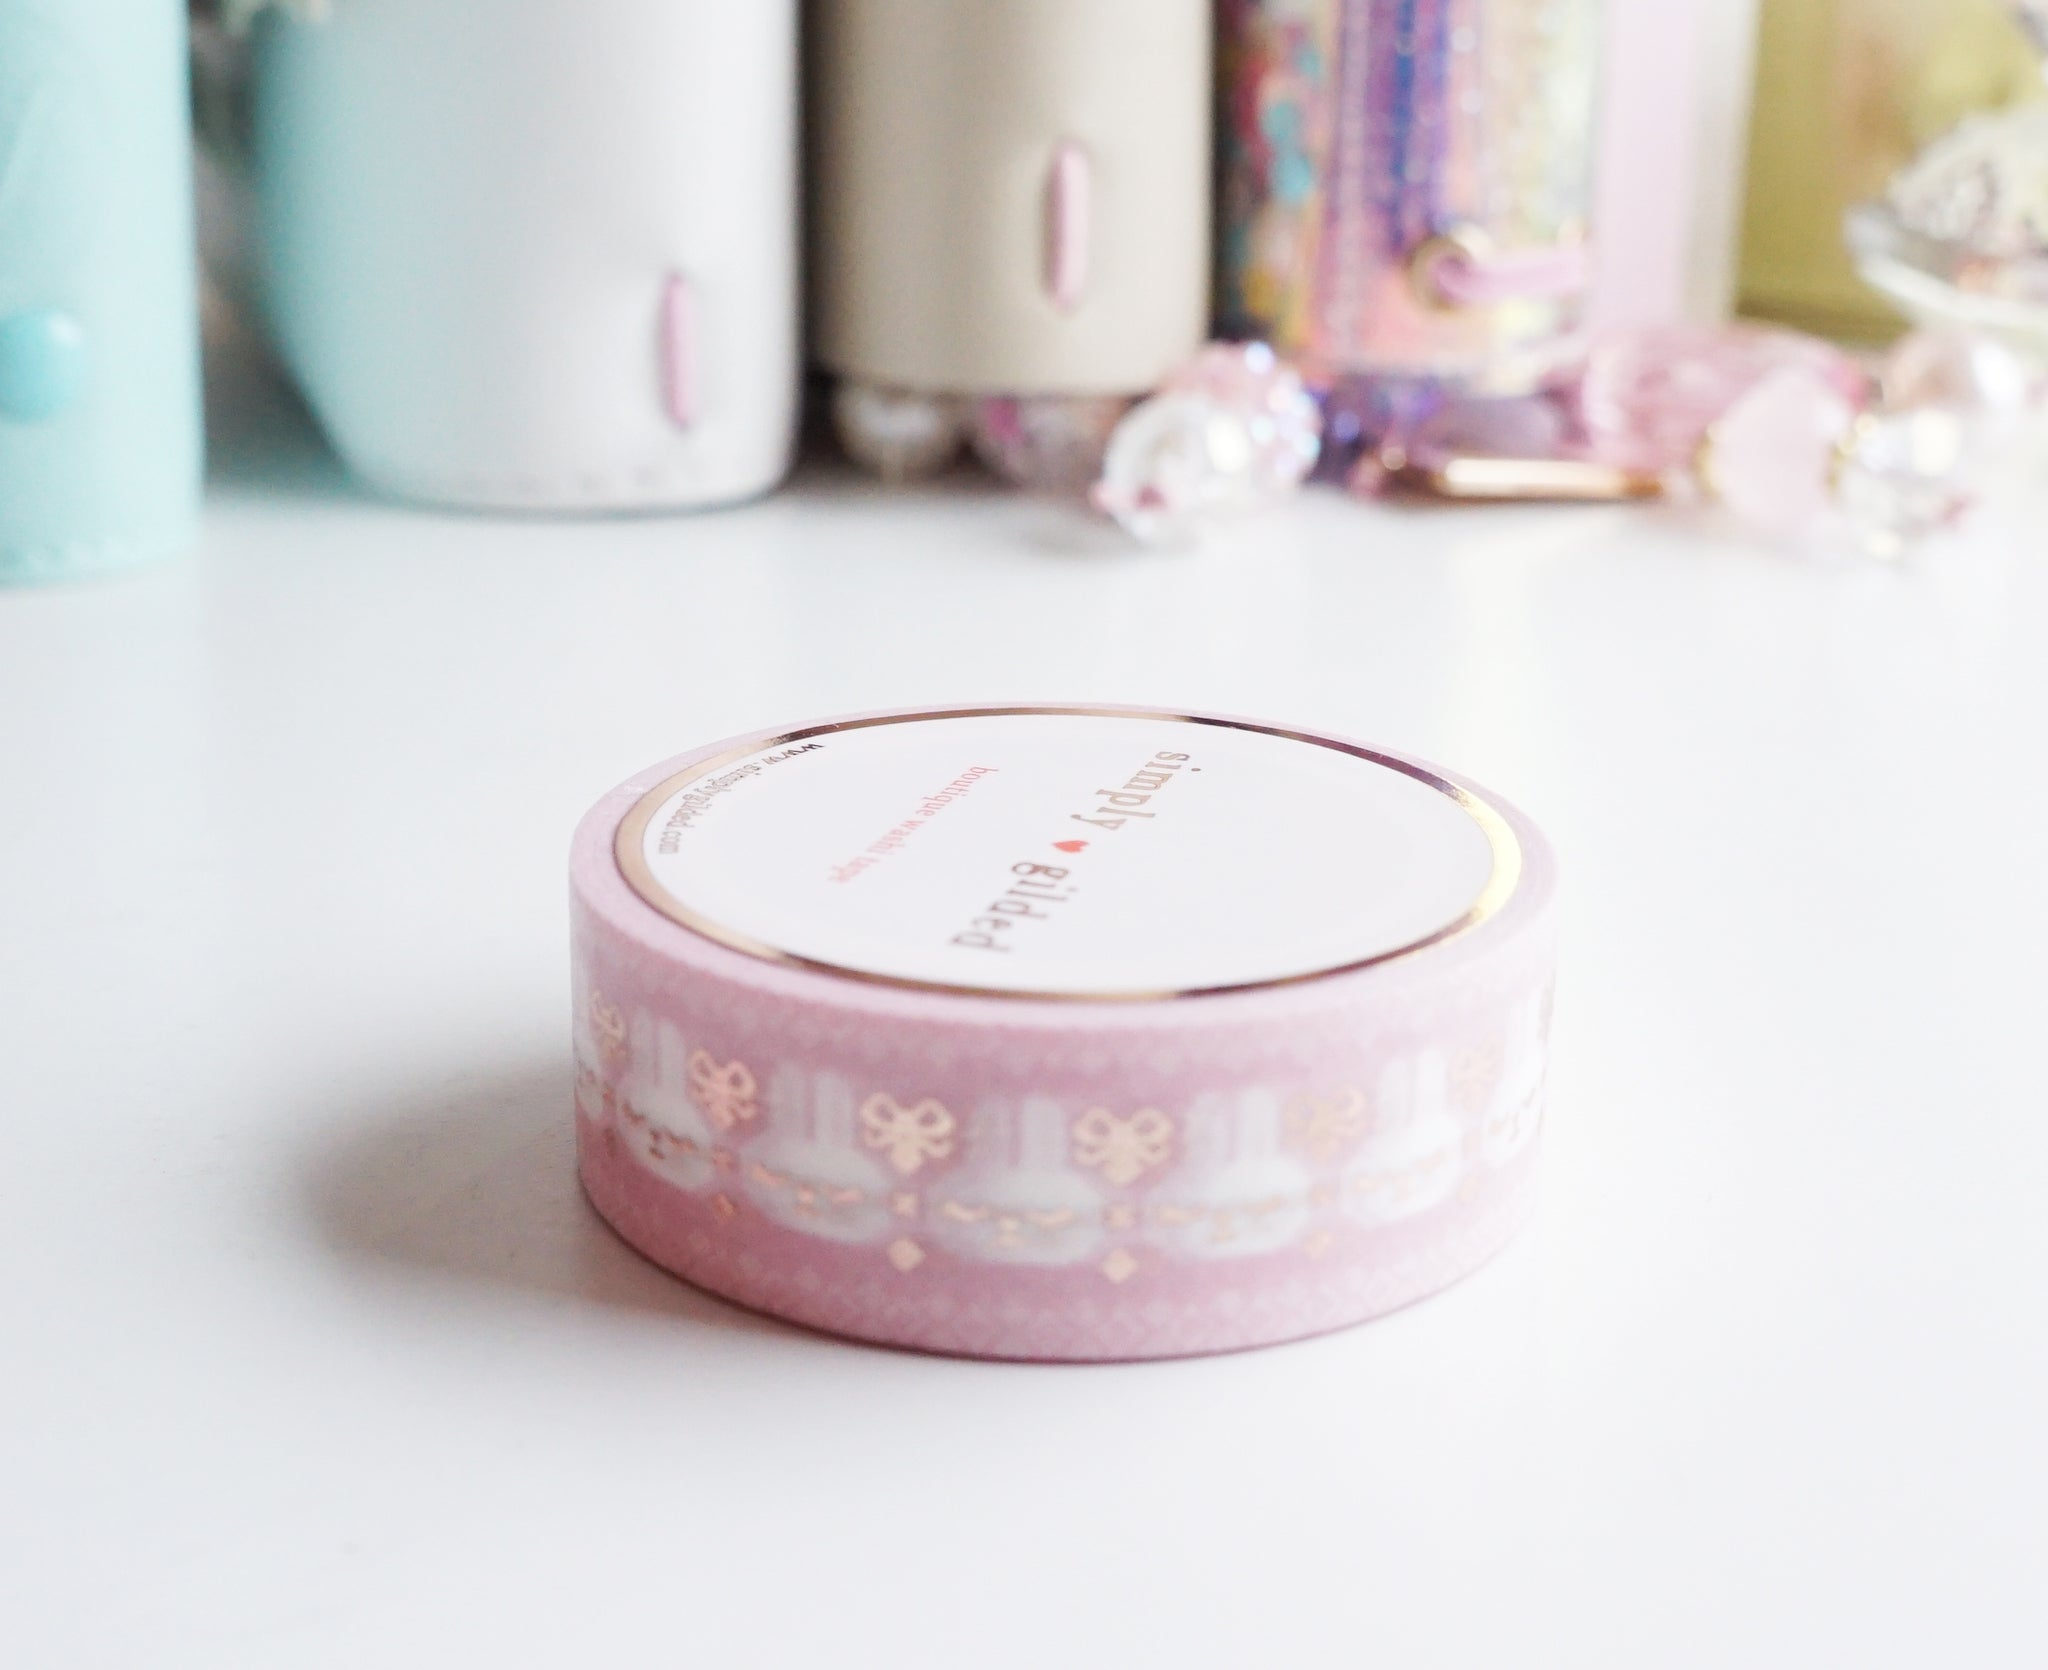 WASHI TAPE 15mm - SWEATER JUNIPER + rose gold foil (Mystery Monday)